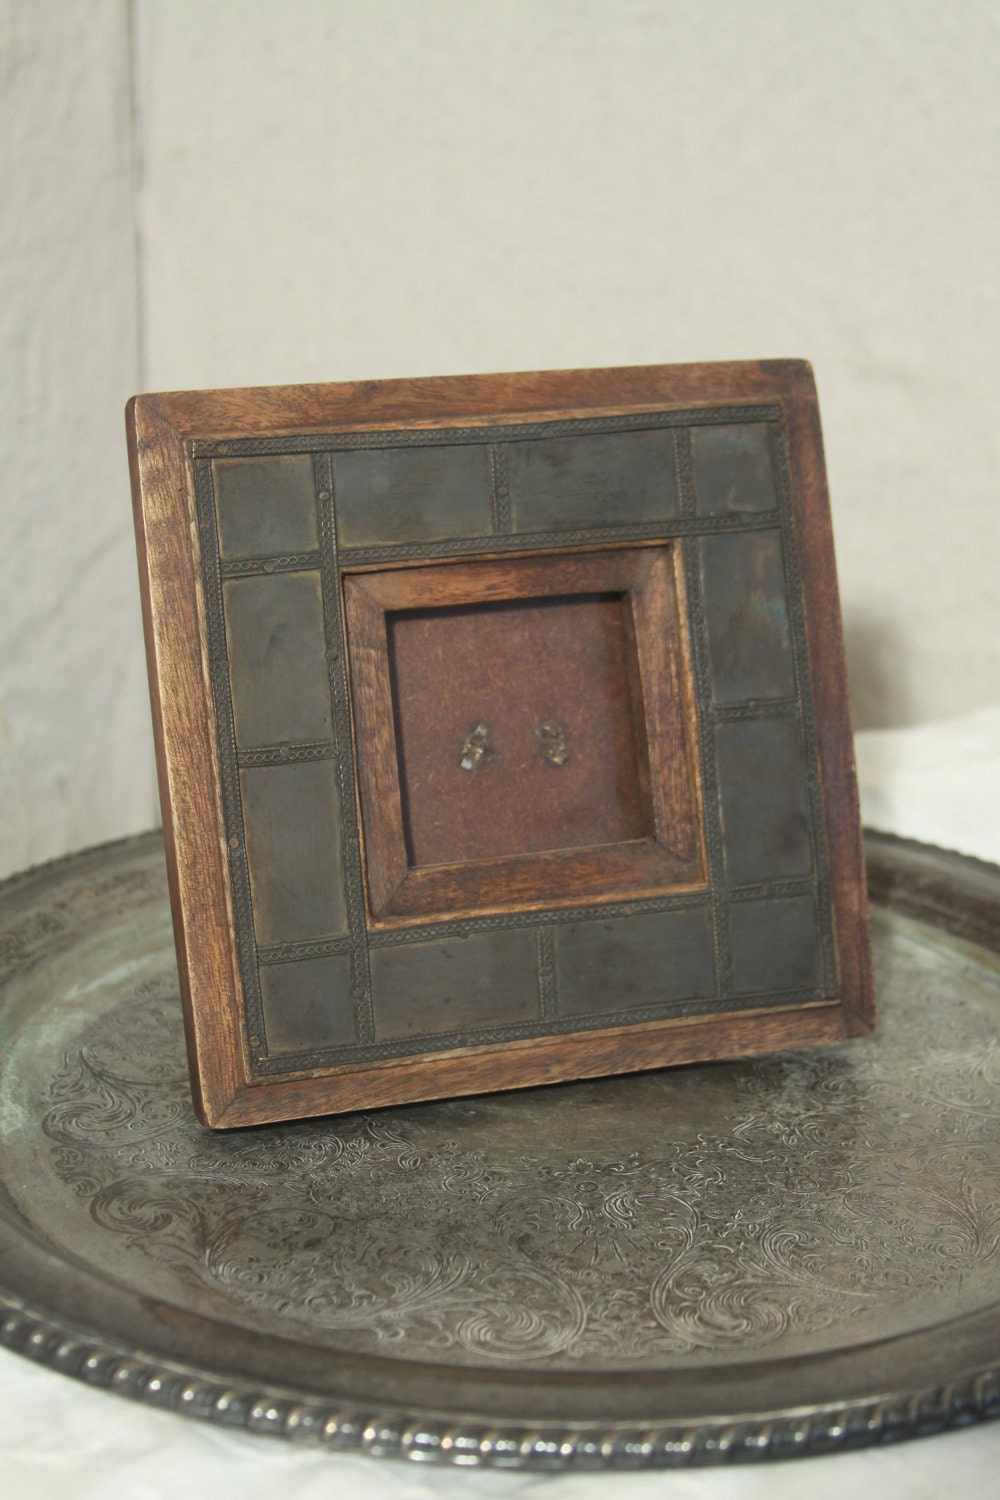 small picture frame rustic metal and wood mini by blackcathill. Black Bedroom Furniture Sets. Home Design Ideas